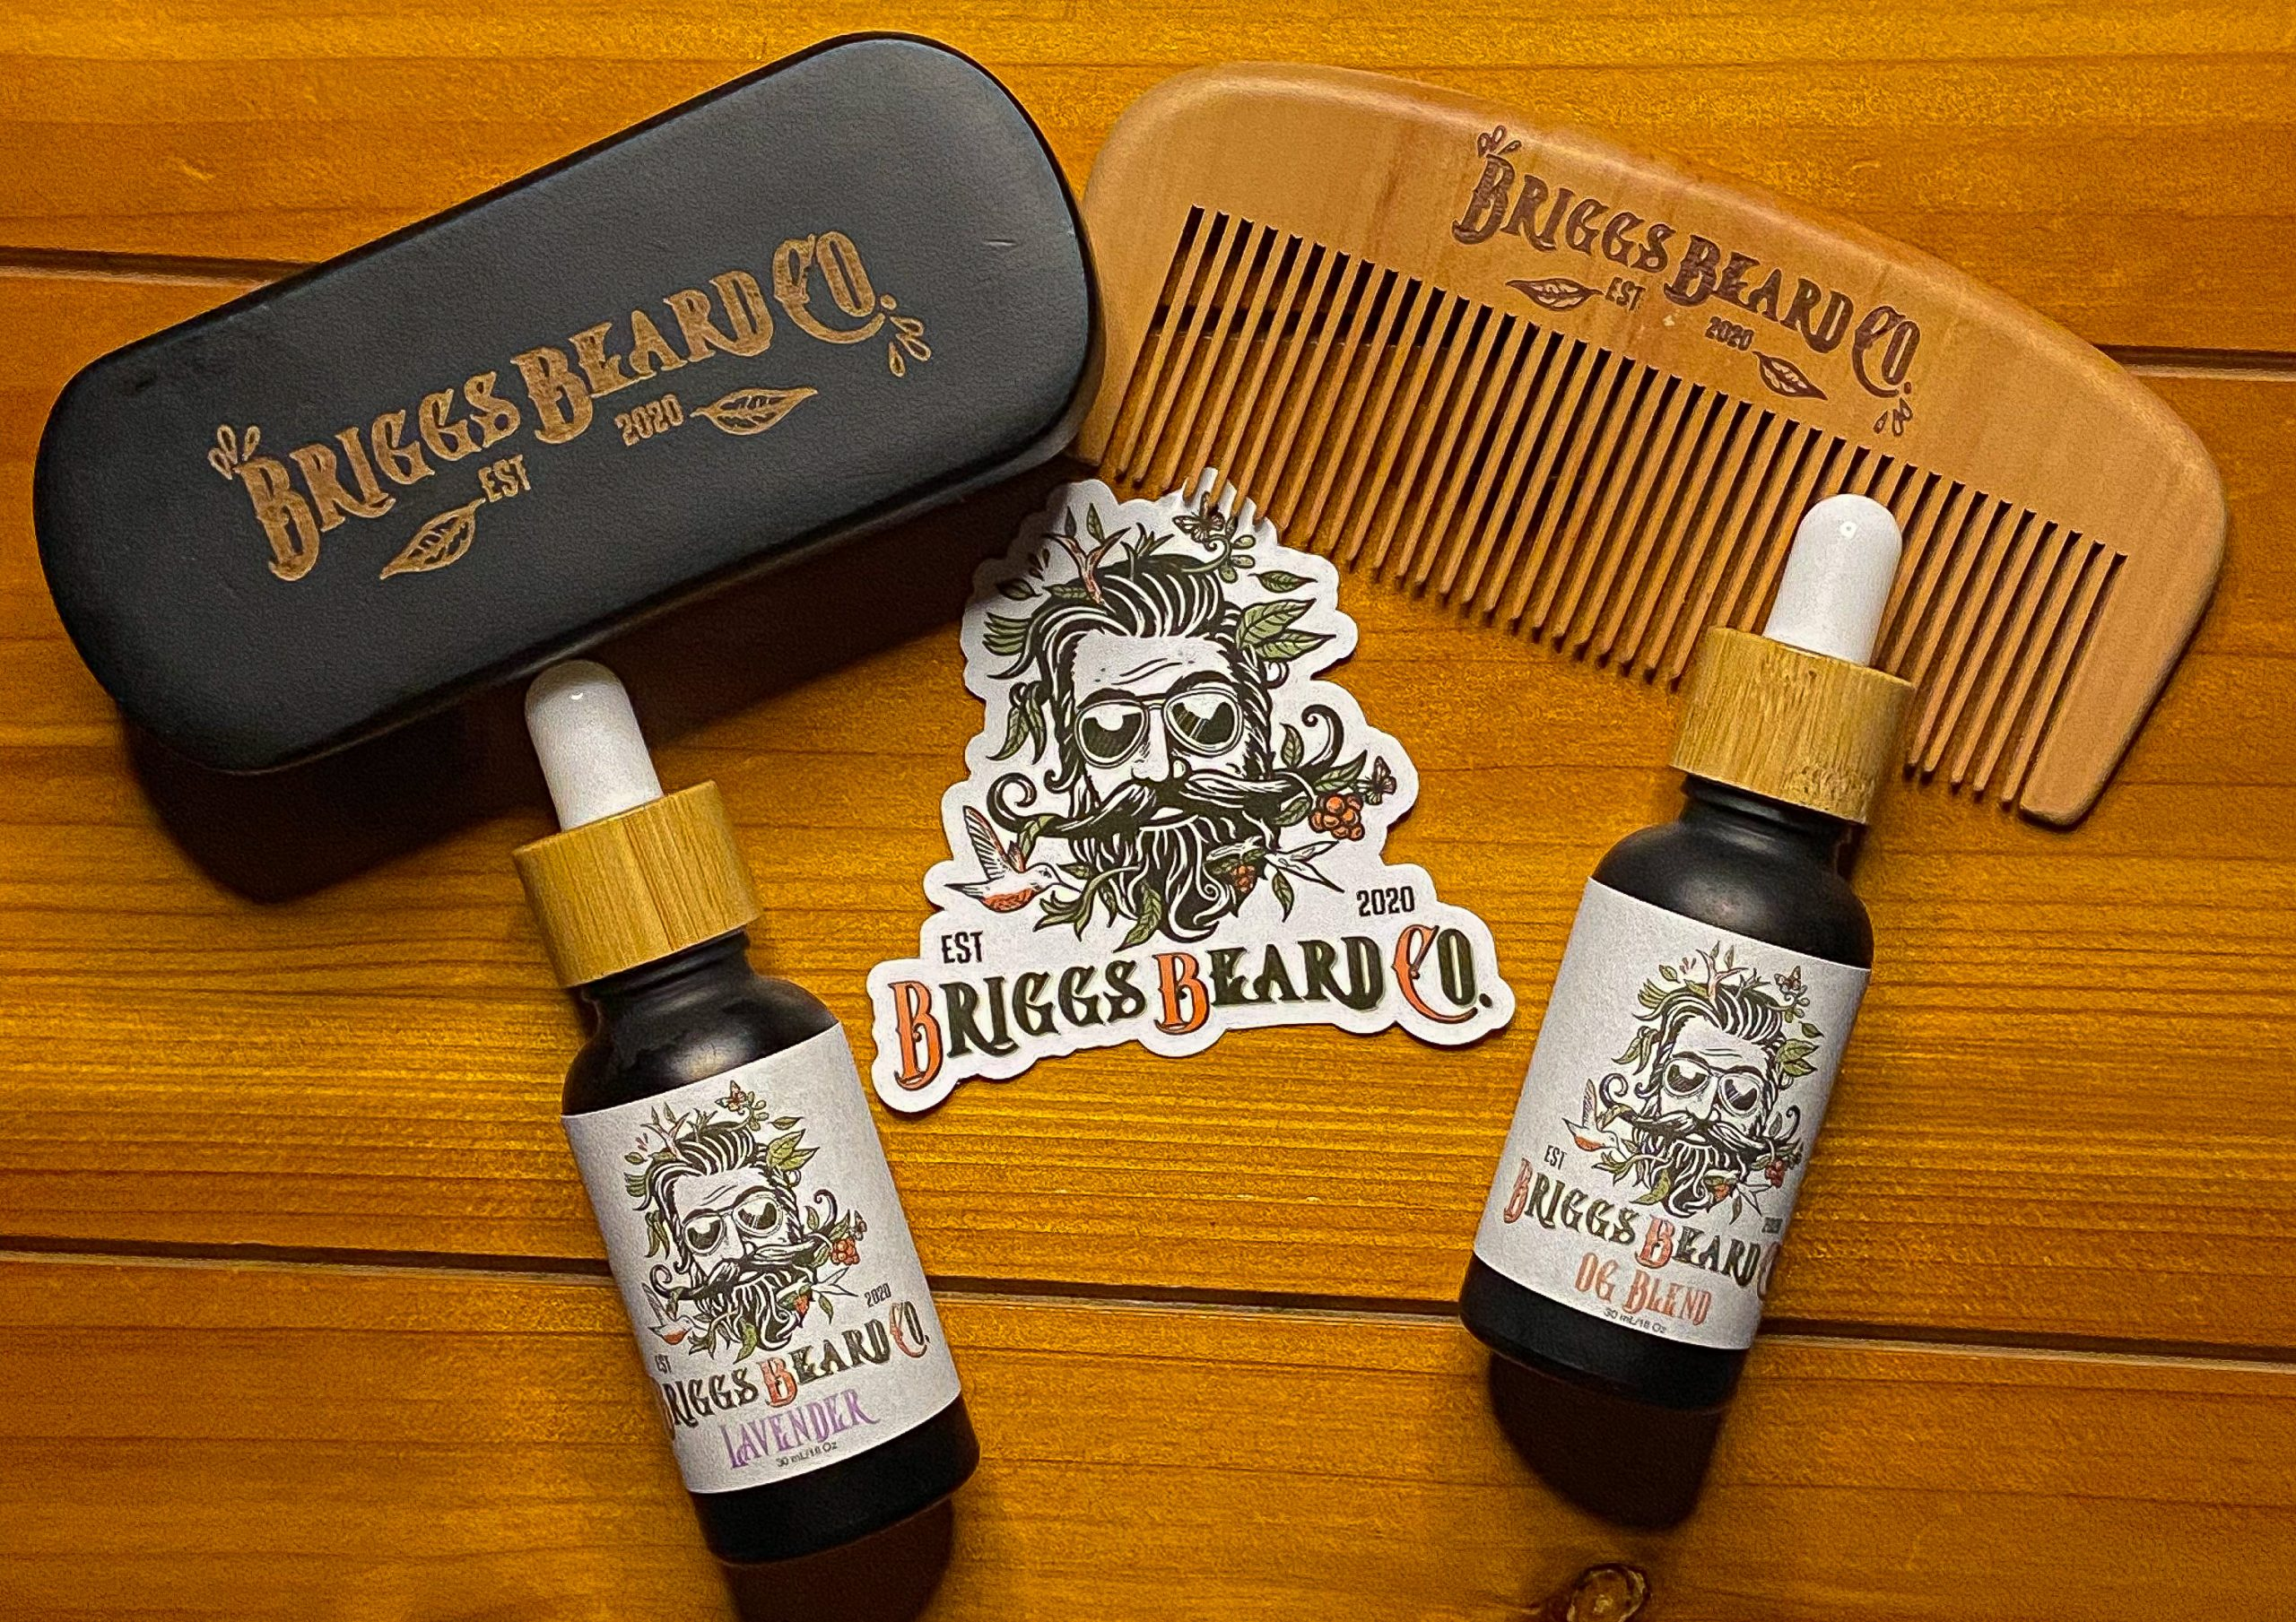 Briggs Beard Co updated Beard Bundle